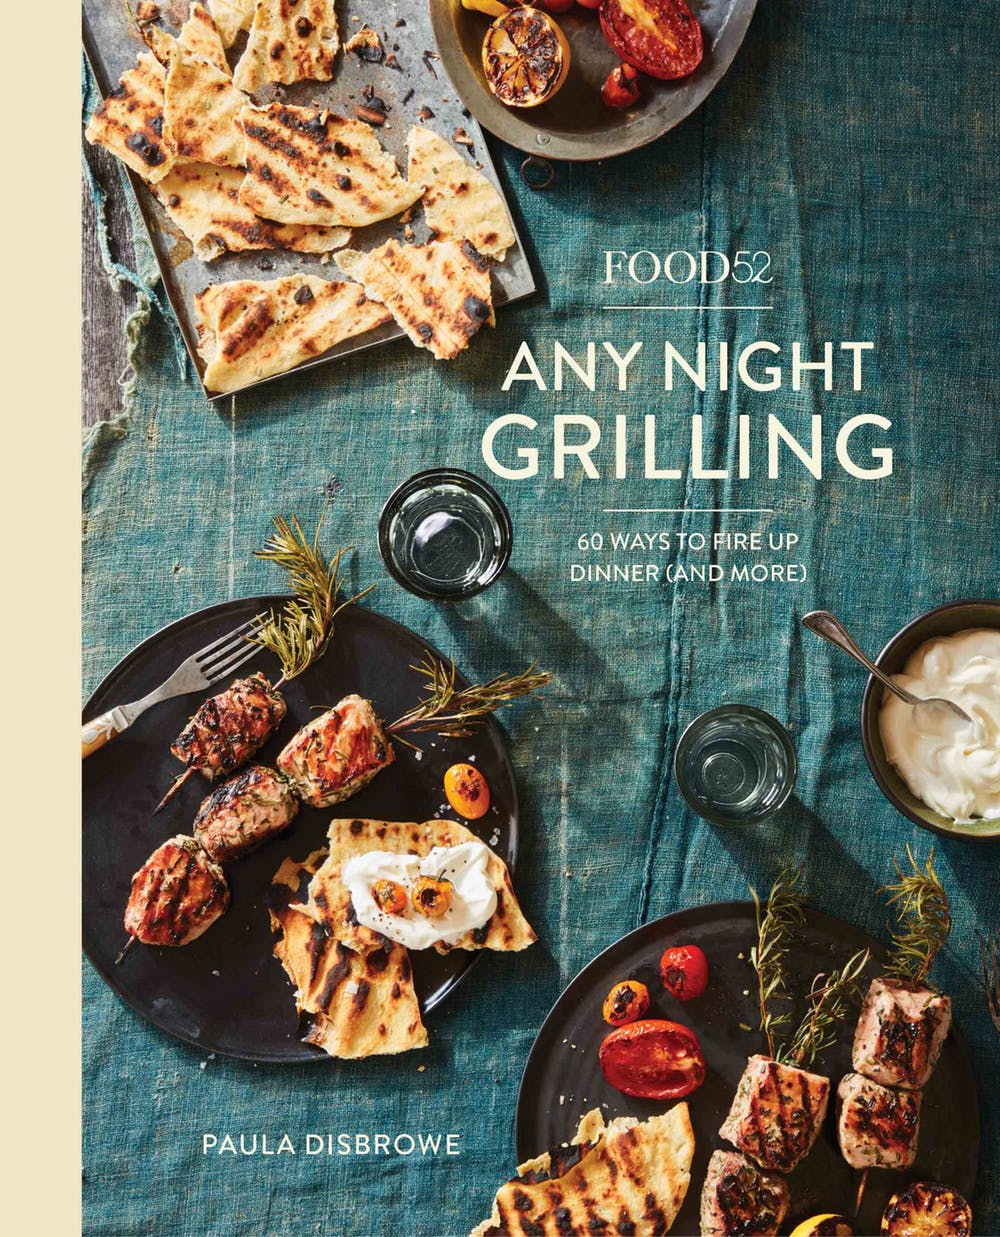 food52 Any Night Grilling Cookbook Review